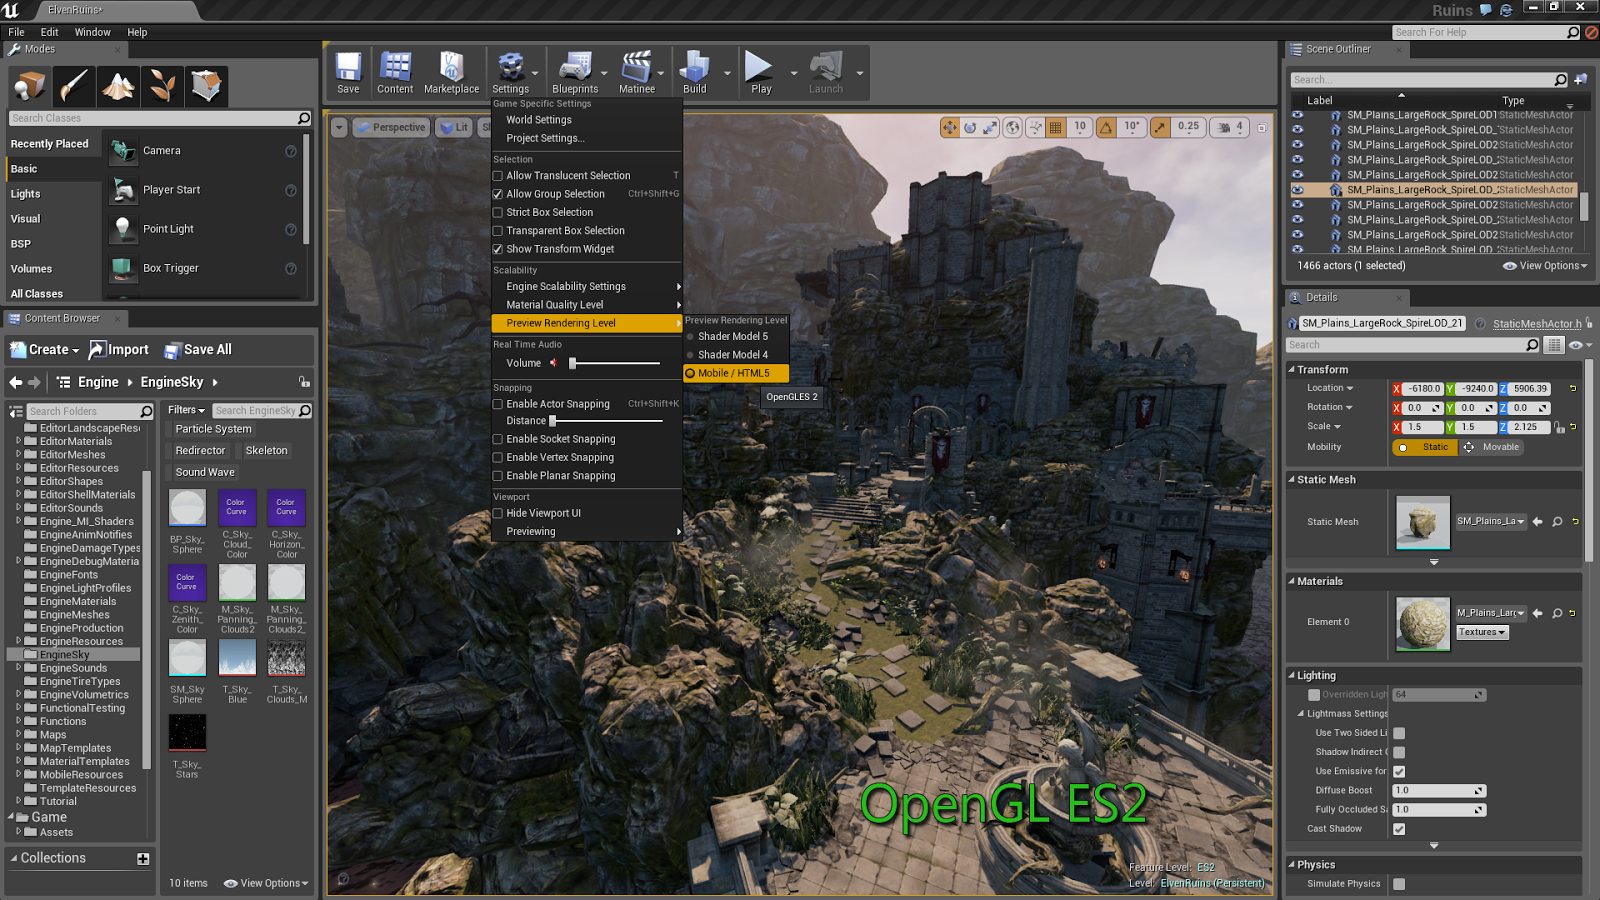 Character Design Unreal Engine 4 : Unreal engine cg daily news